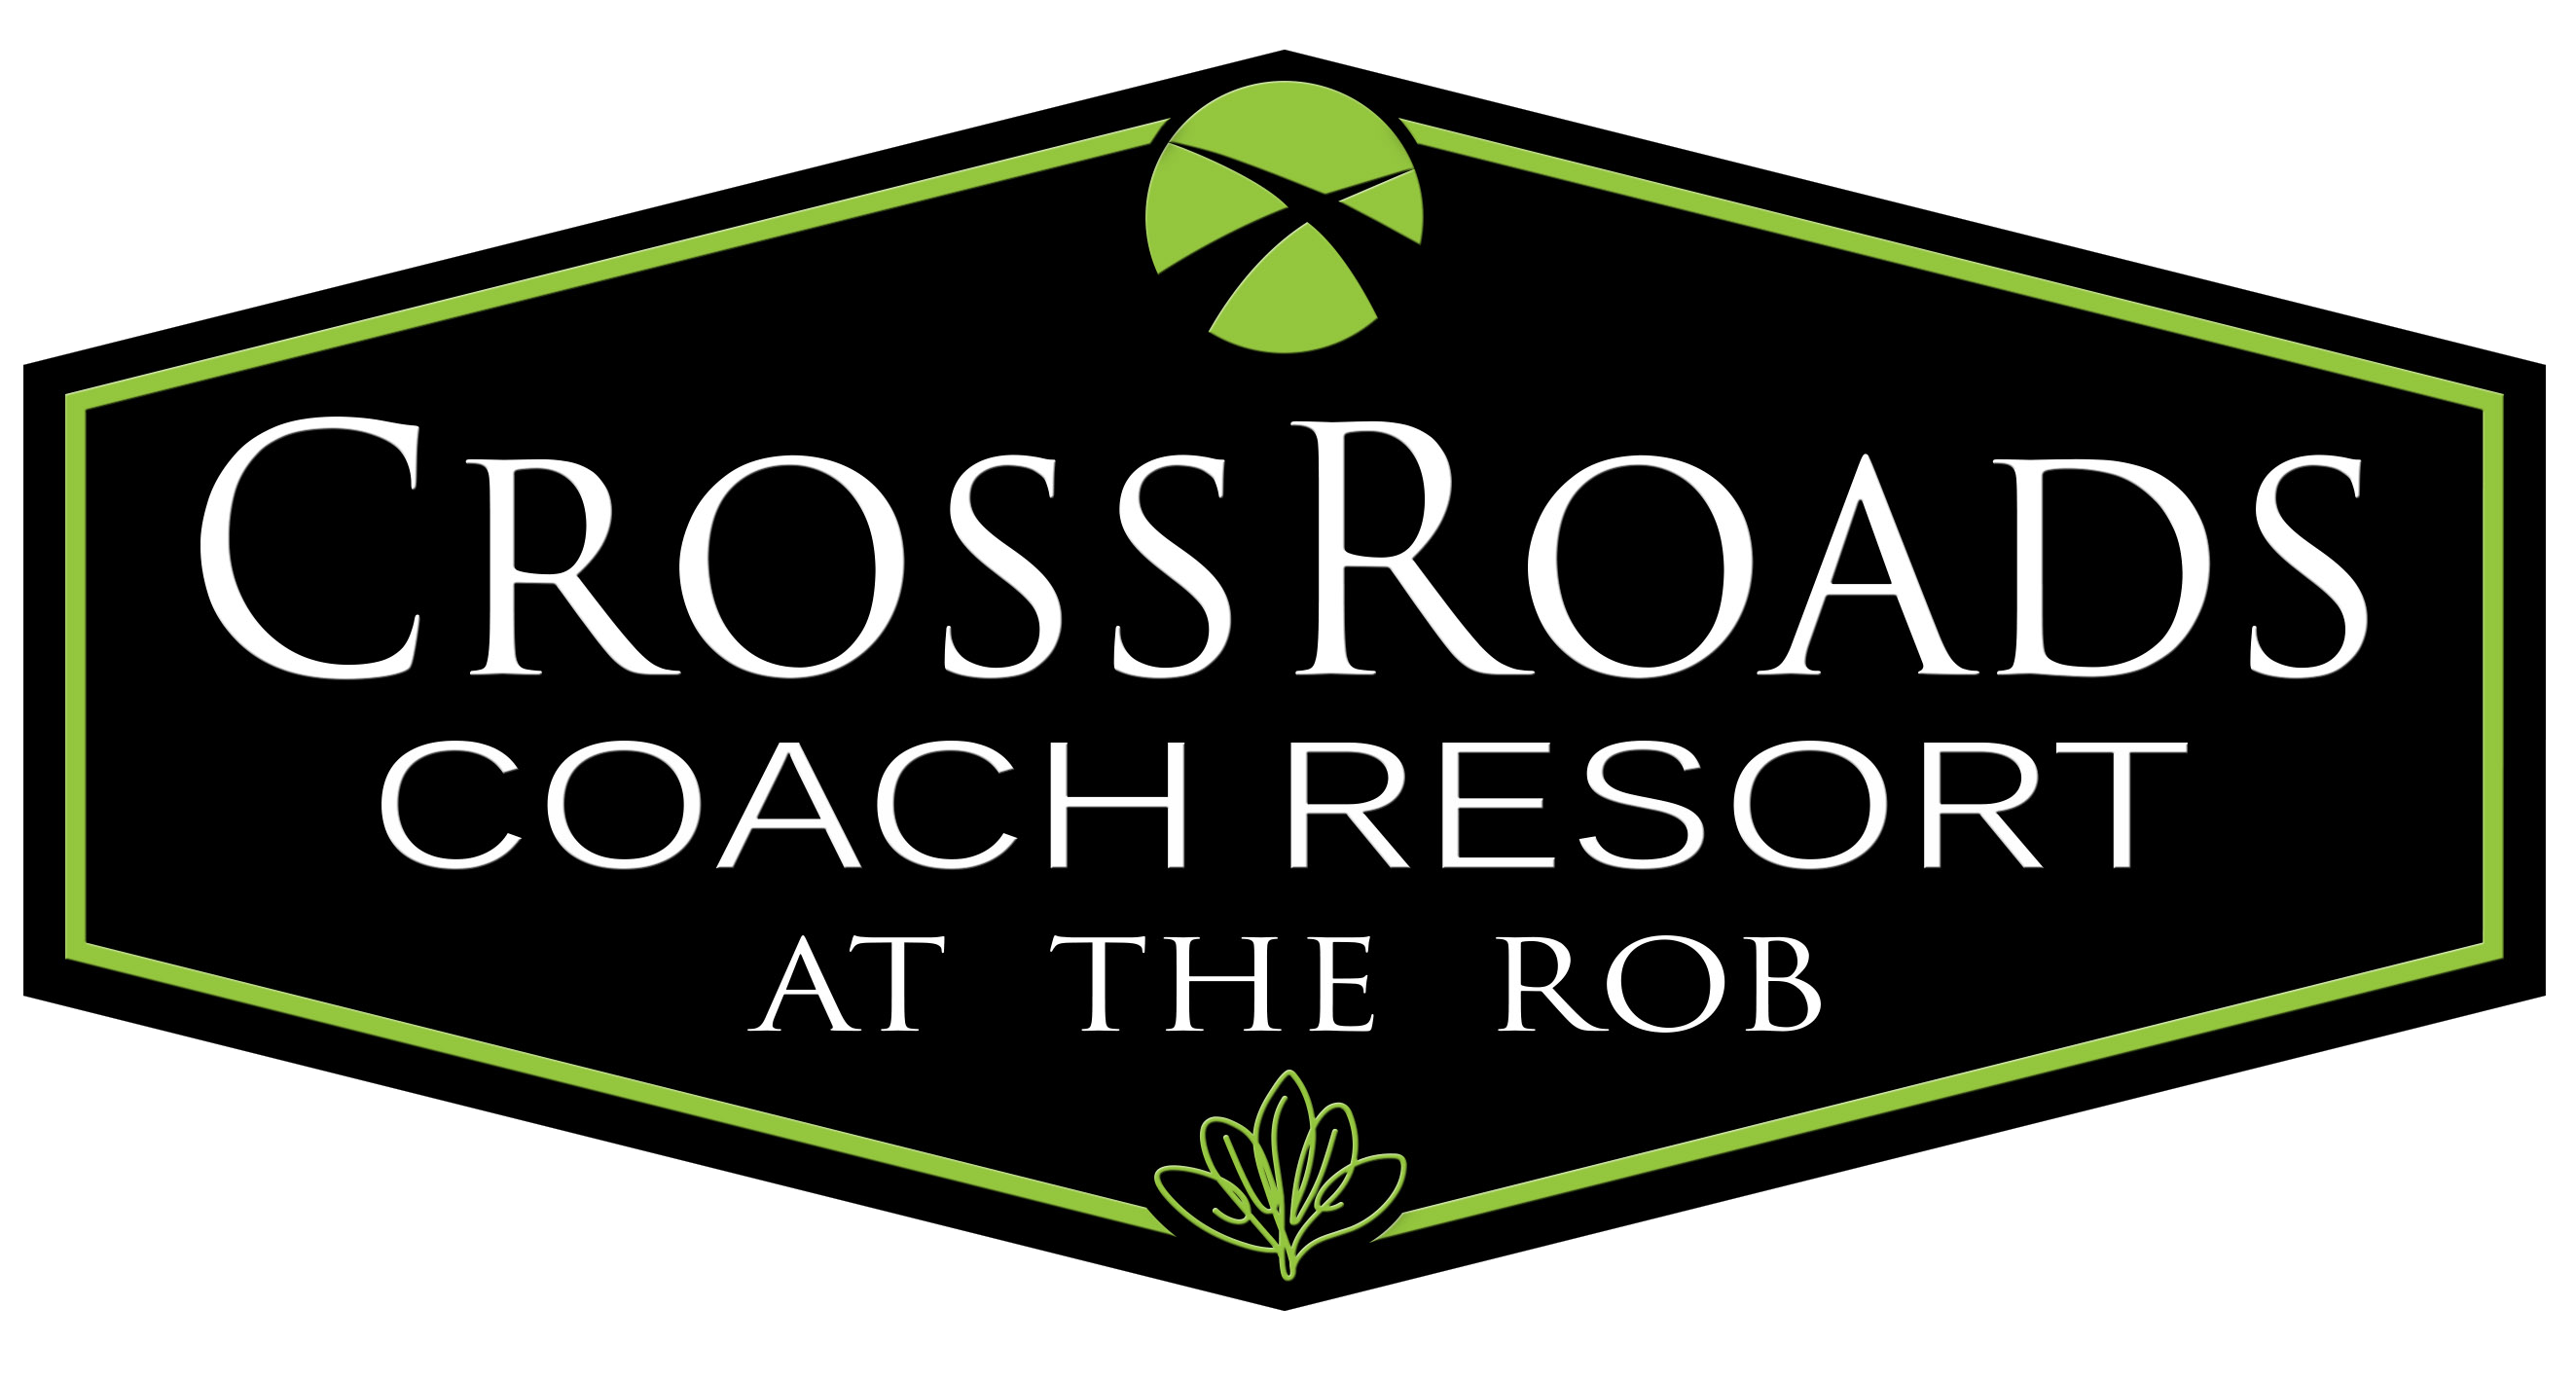 CrossRoads Coach Resort at the ROB